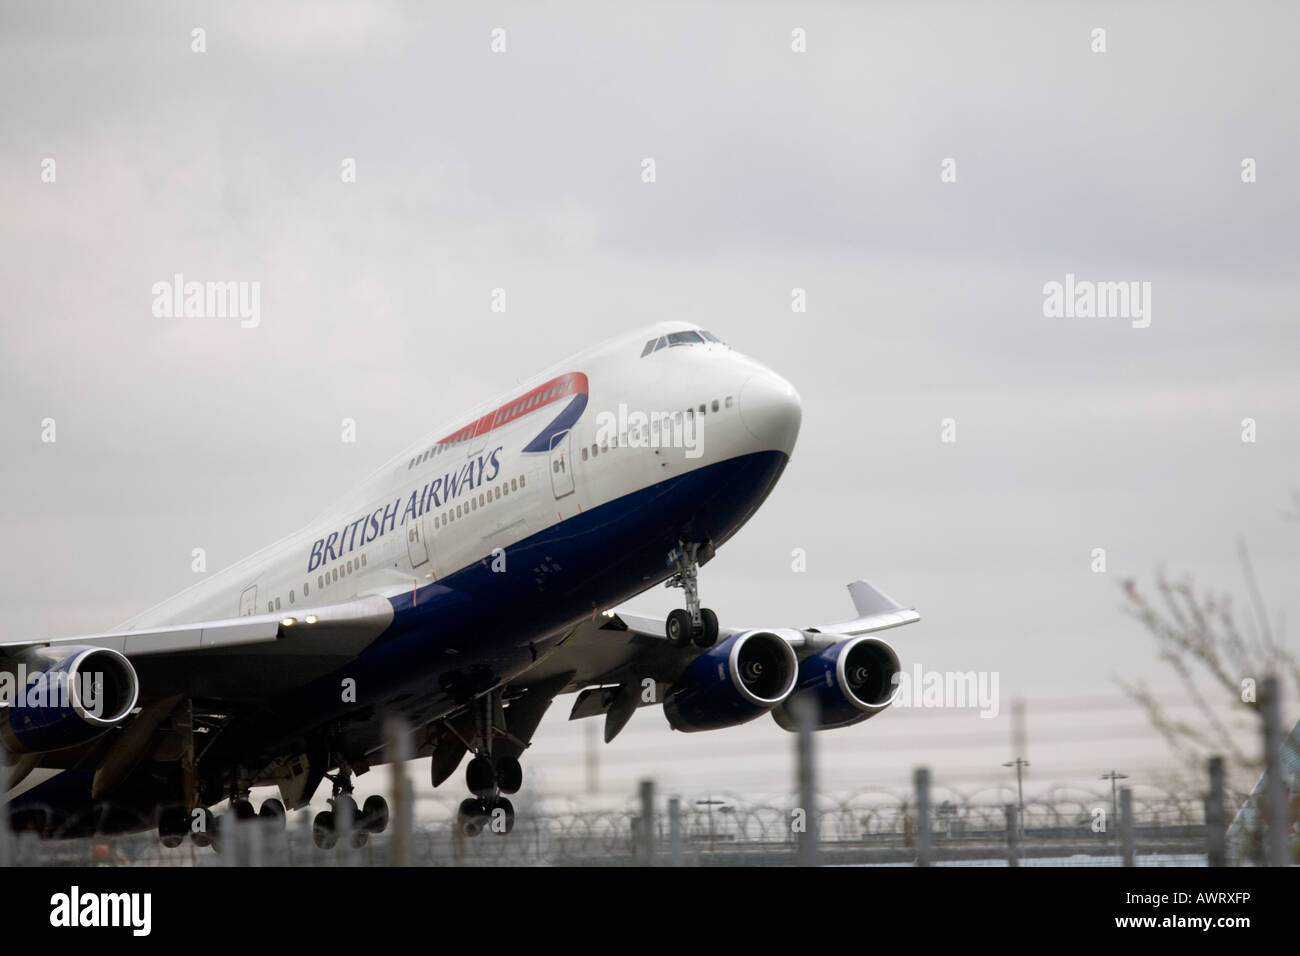 A British Airways Boeing Jumbo Jet takes off at London Heathrow Airport over security fences - Stock Image